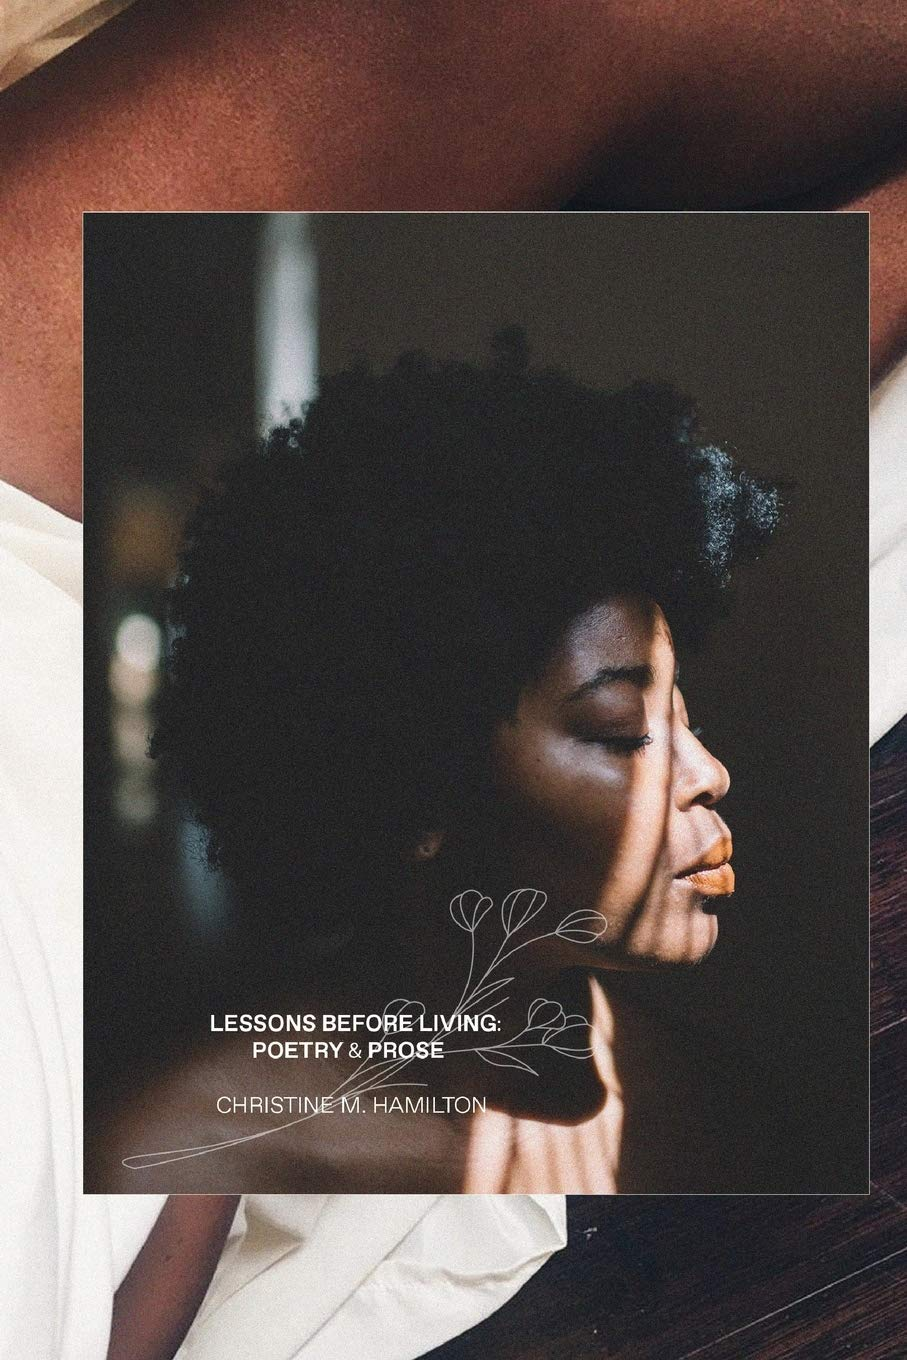 Lessons Before Living: A Compilation of Poetry & Prose by Christine M. Hamilton